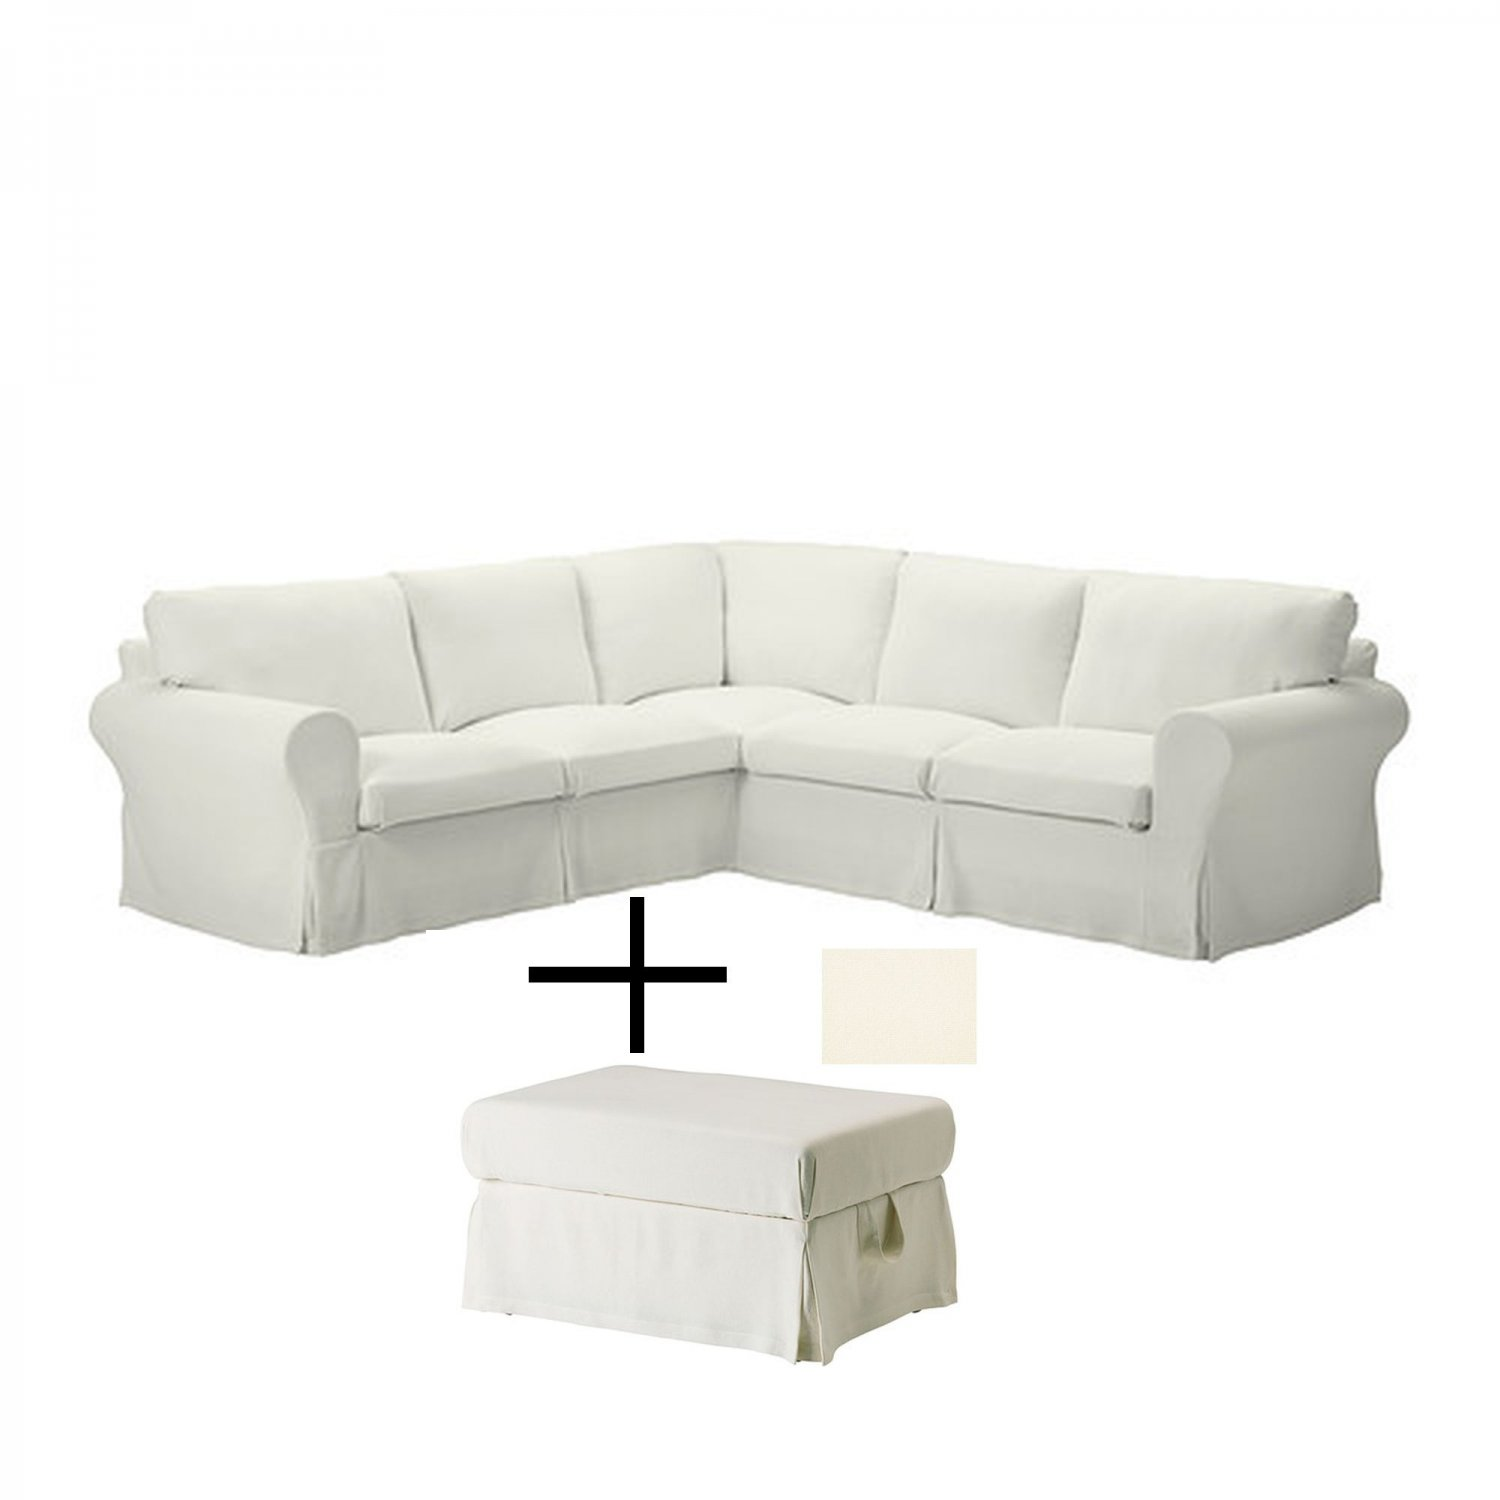 ikea ektorp corner sofa and footstool slipcovers stenasa white 4 seat sectional and ottoman covers. Black Bedroom Furniture Sets. Home Design Ideas